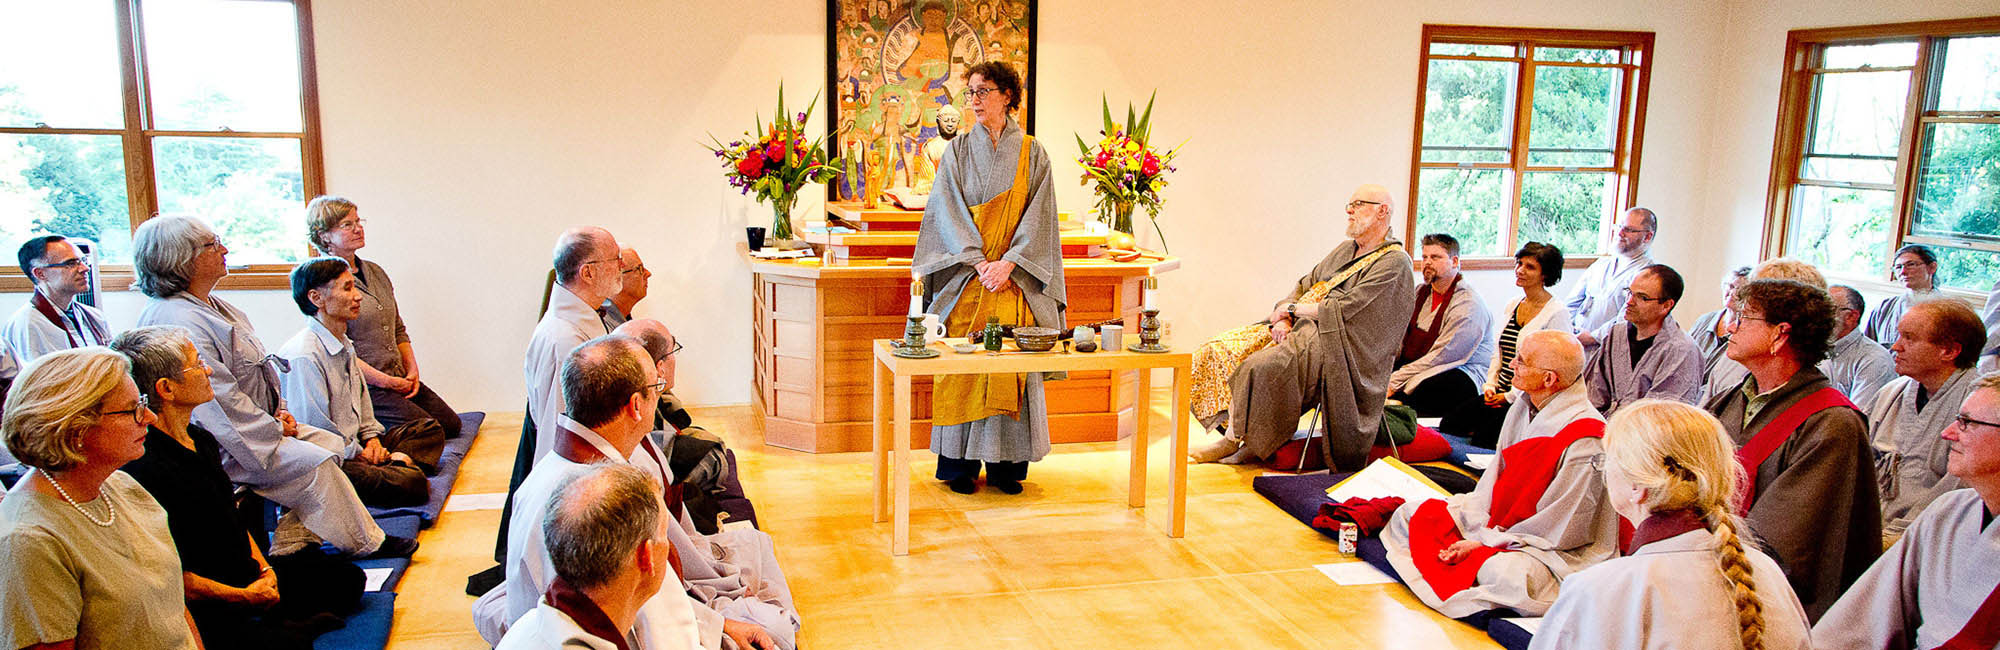 Zen Master Jeong Ji, also known as Anita Feng, is becoming a leader in the Northwest after receiving Zen dharma transmission